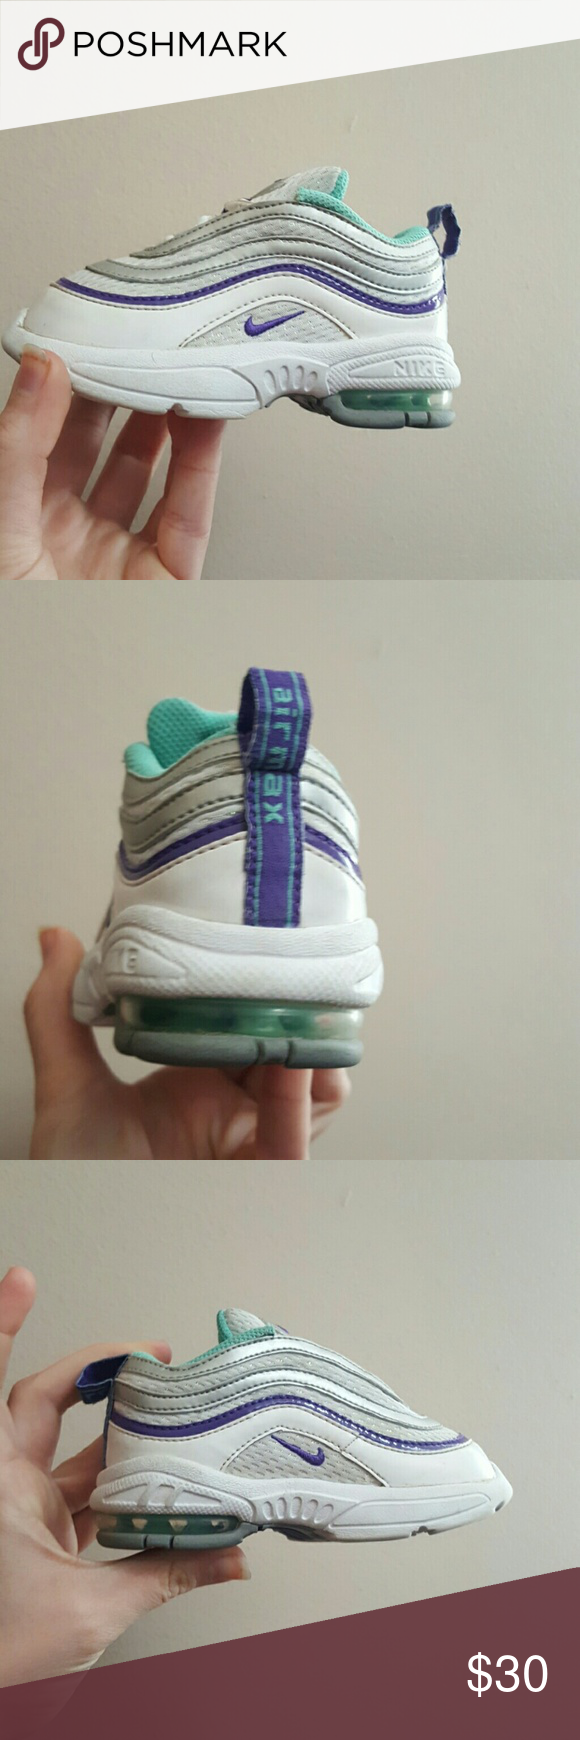 air max 97 for babies